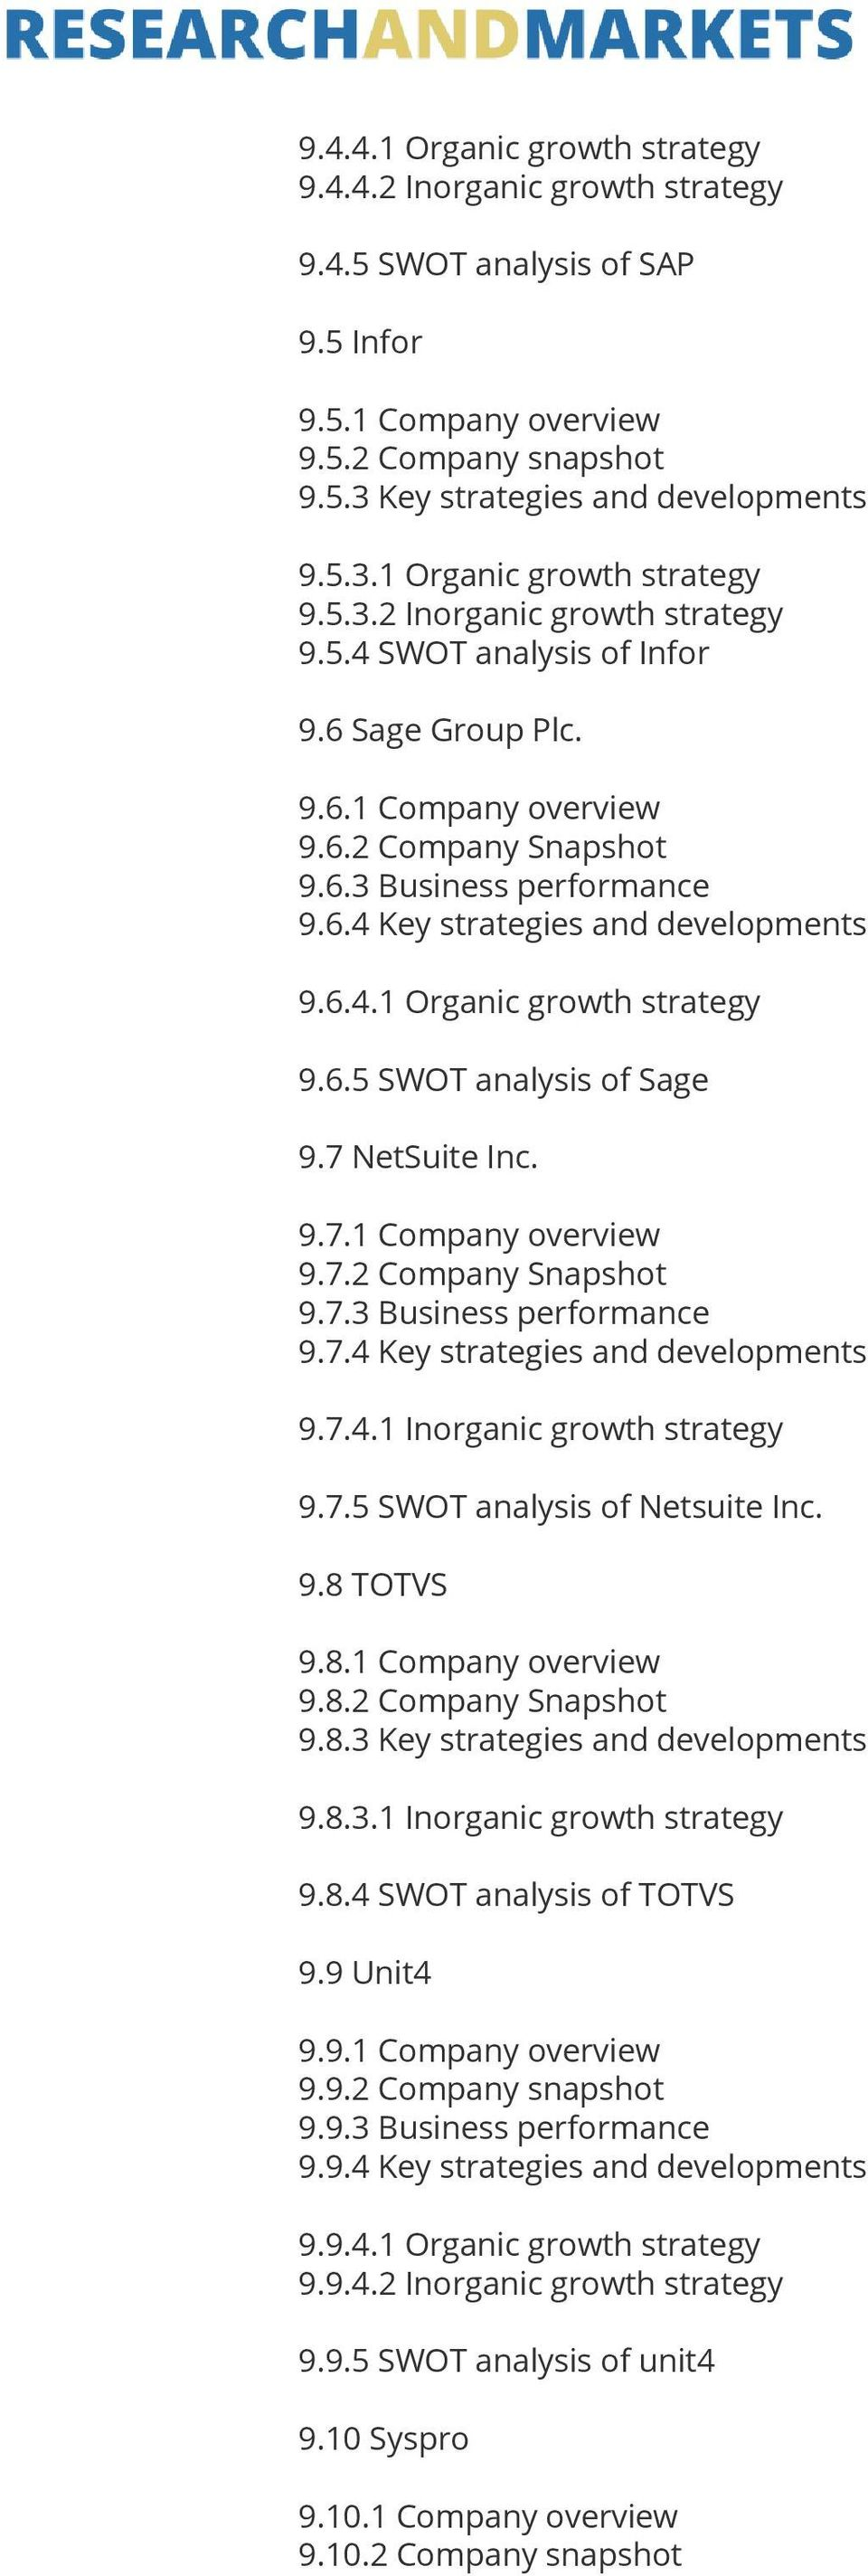 7 NetSuite Inc. 9.7.1 Company overview 9.7.2 Company Snapshot 9.7.3 Business performance 9.7.4 Key strategies and developments 9.7.4.1 Inorganic growth strategy 9.7.5 SWOT analysis of Netsuite Inc. 9.8 TOTVS 9.